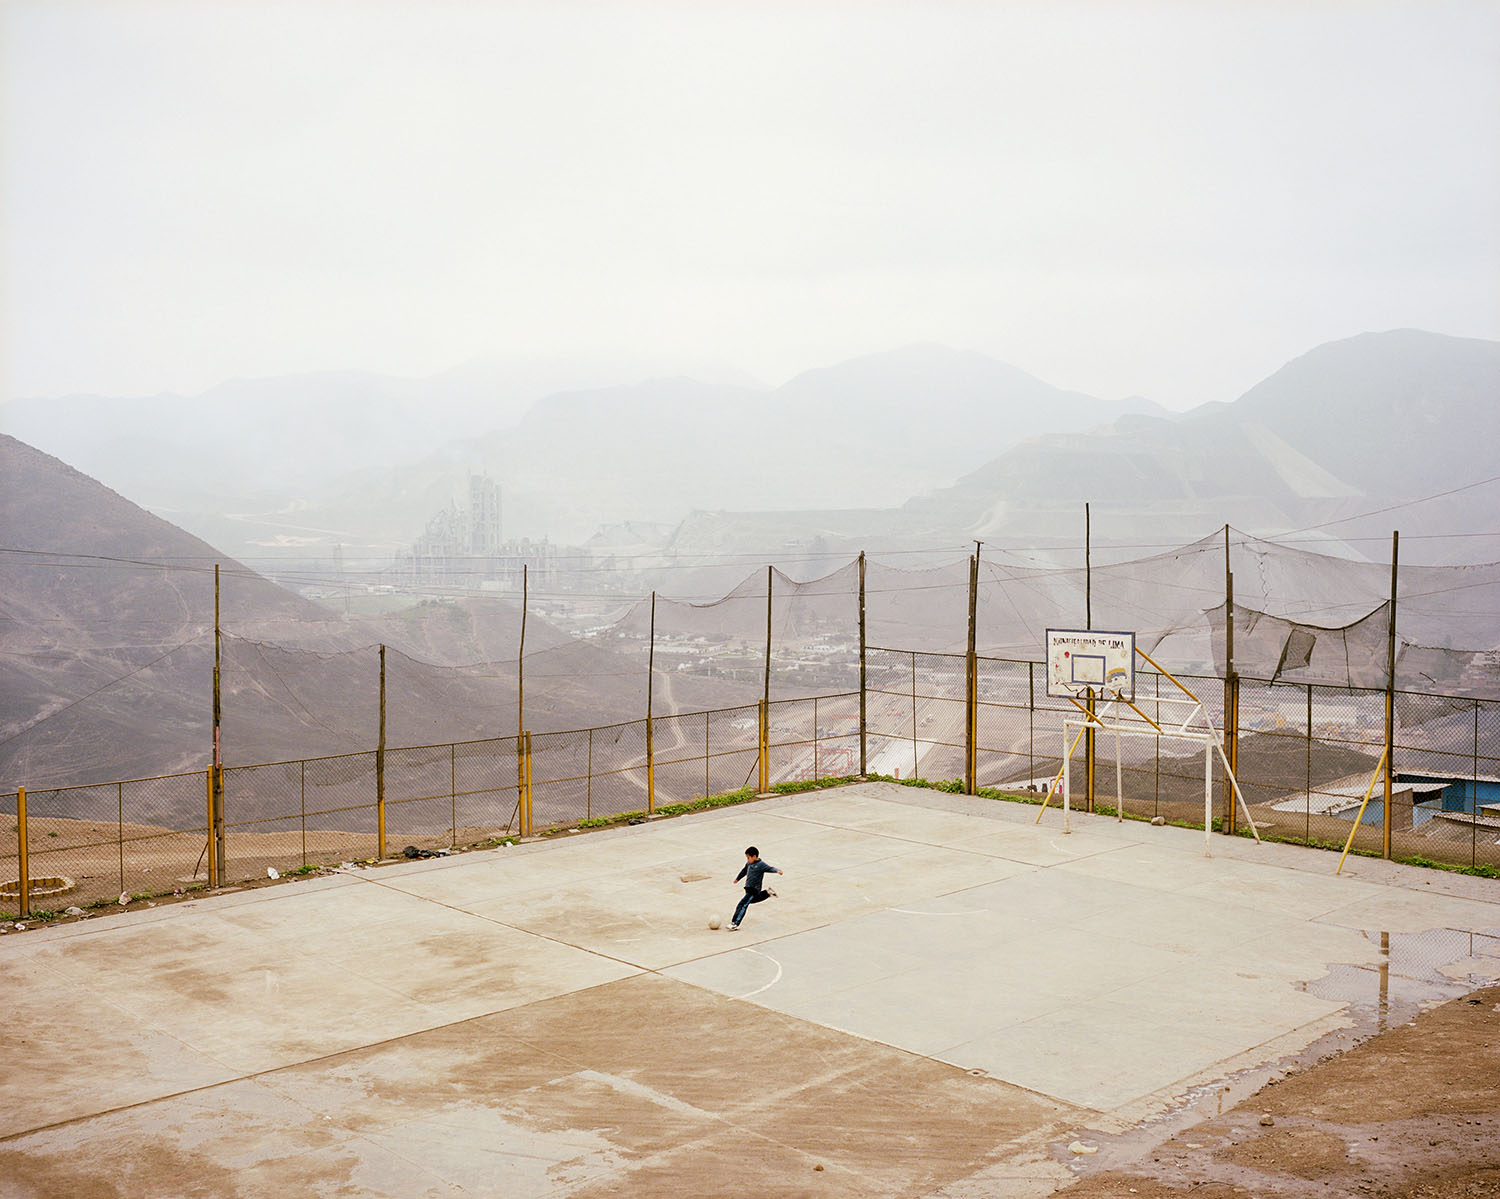 Luis Fernando Vasquez plays futbol in the La Pradera Settlement, Lima. 2010.